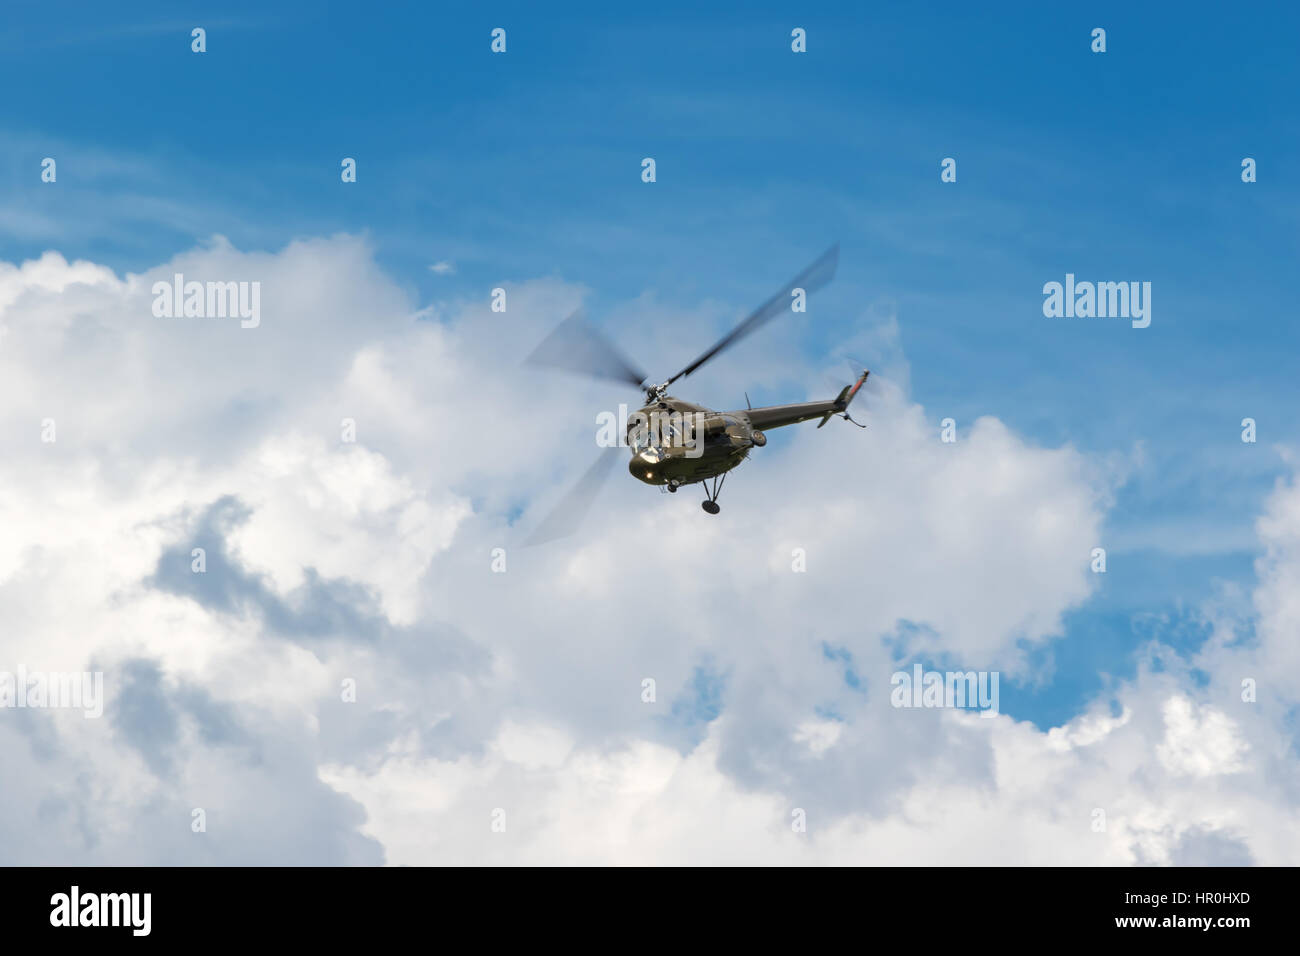 Military khaki helicopter flying in the blue sky with clouds closeup - Stock Image